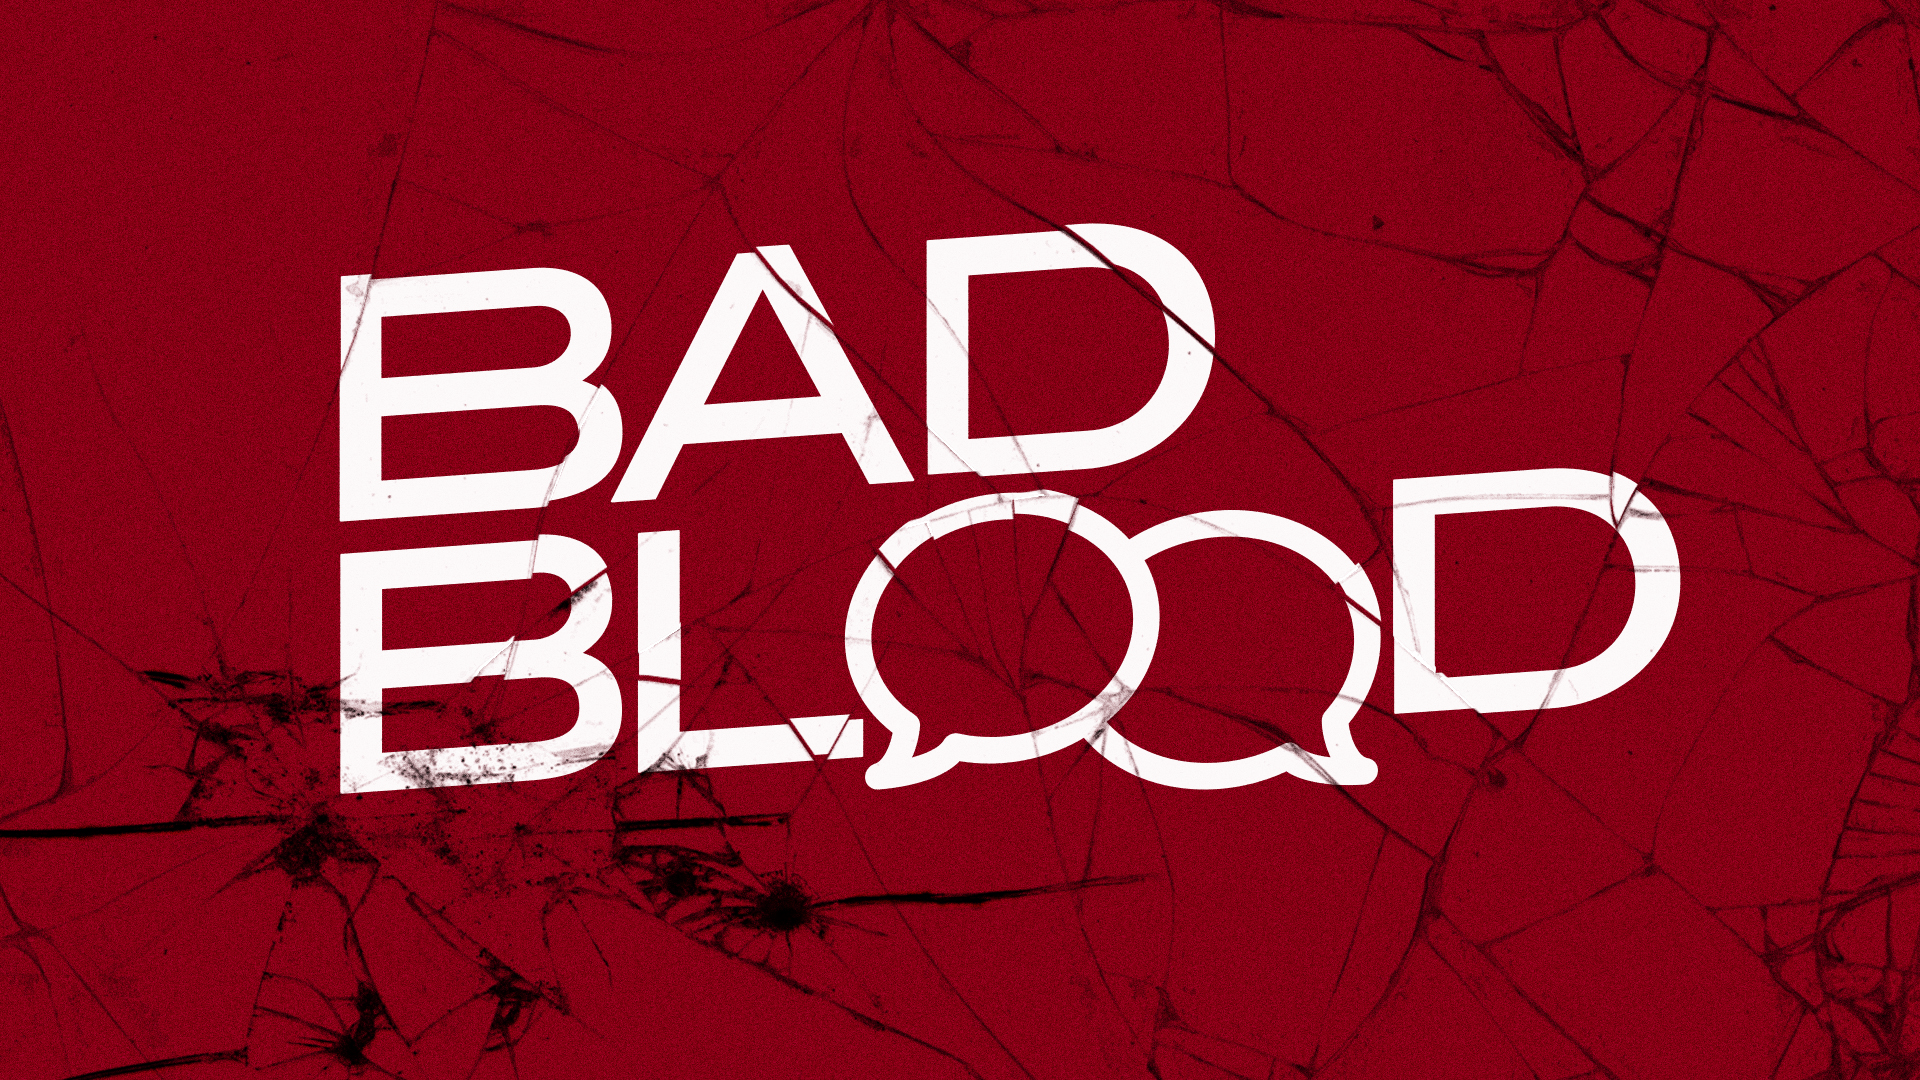 Bad-Blood-1920x1080